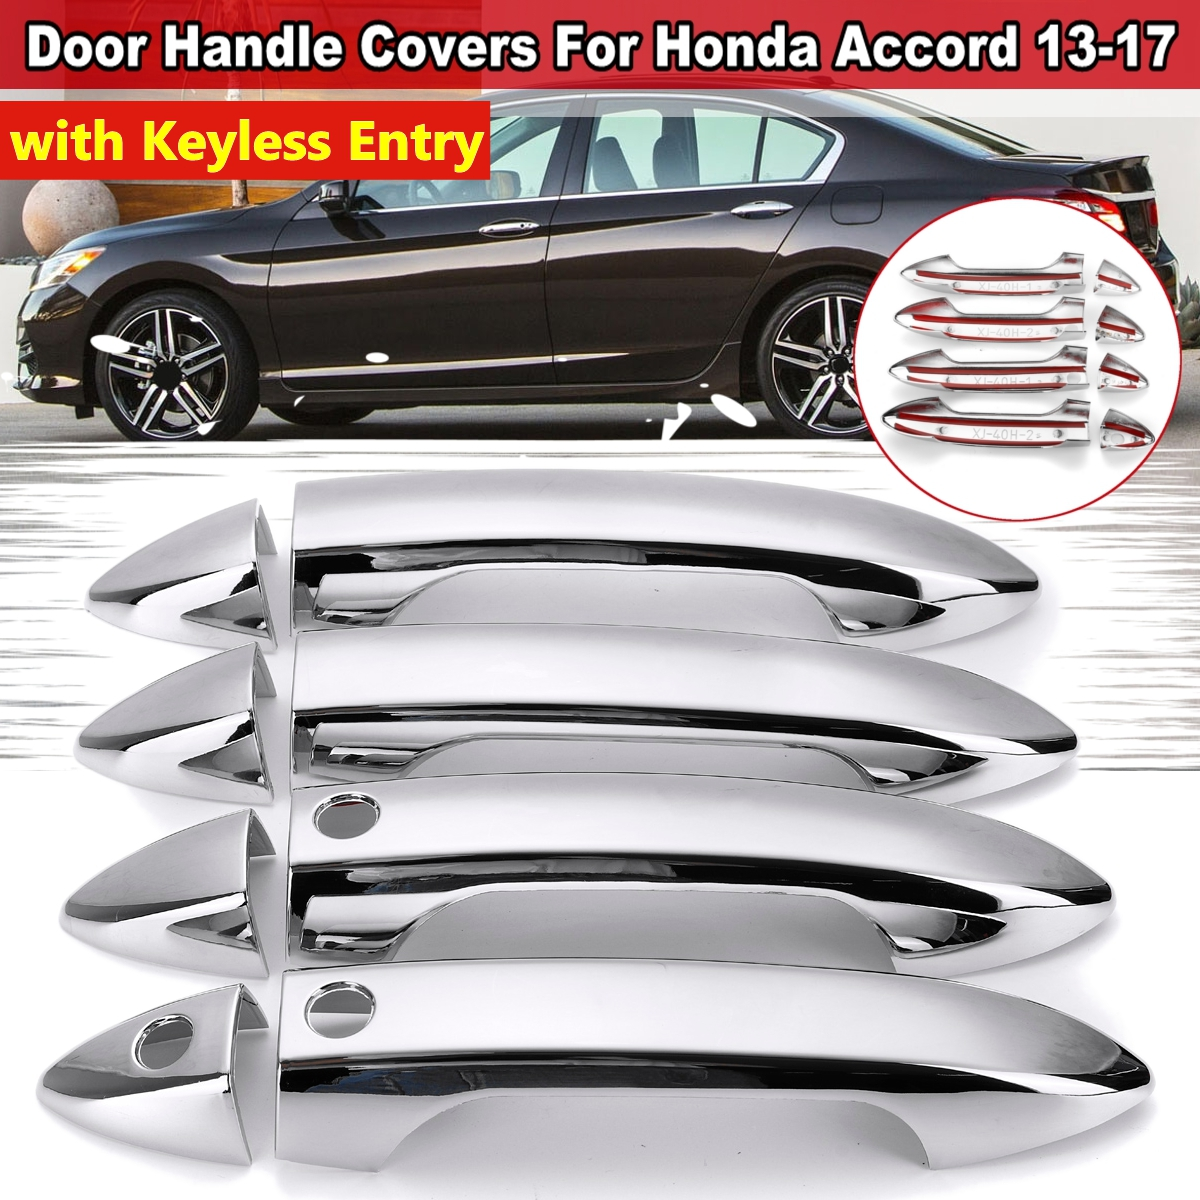 Car Door Handle Cover For <font><b>Honda</b></font> <font><b>Accord</b></font> MK9 2013 2014 2015 <font><b>2016</b></font> 2017 With Smart Key Hole Chrome Molding Trim Bezel <font><b>Accessories</b></font> image